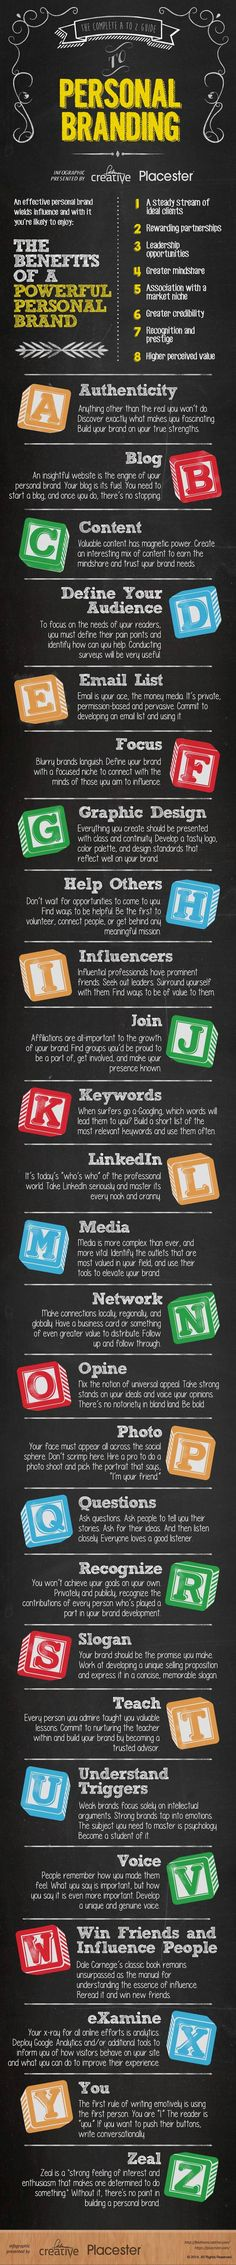 The Complete A to Z Guide to Personal Branding (Infographic)